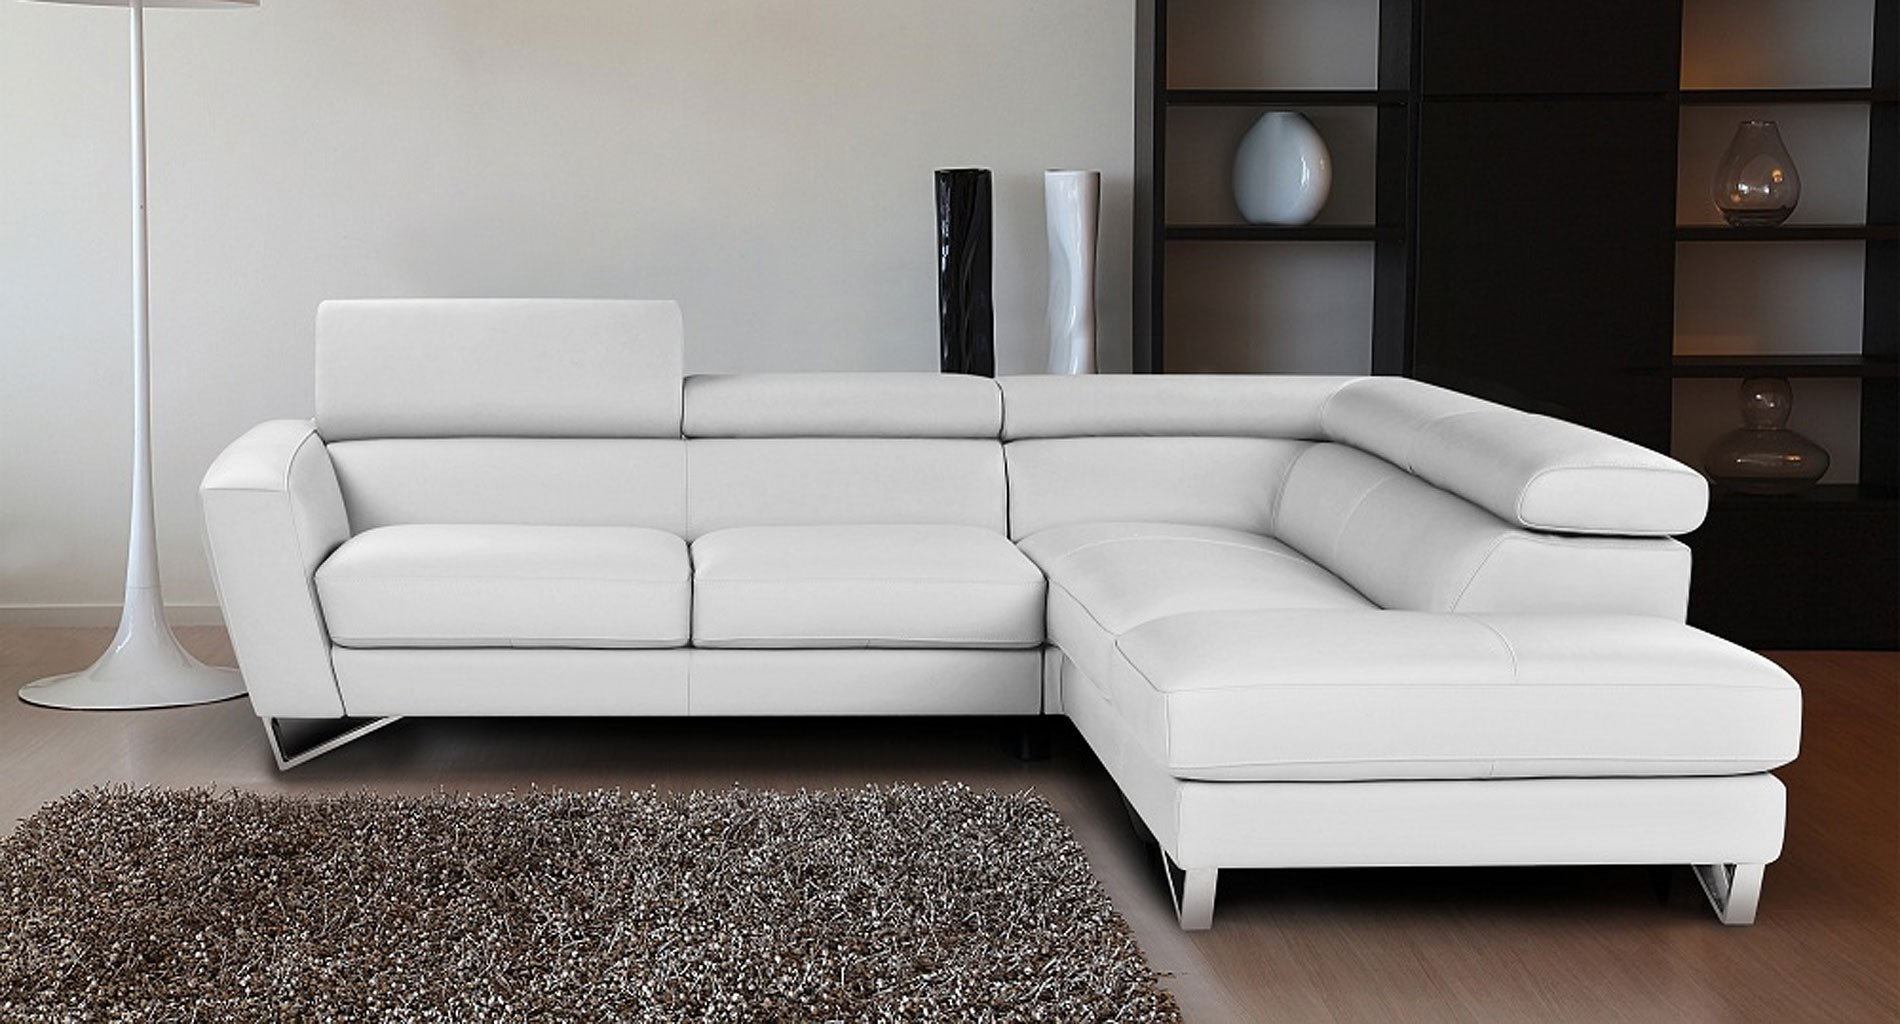 Sparta Leather Right Chaise Sectional (White) JM Furniture ... on Sparta Outdoor Living id=12599